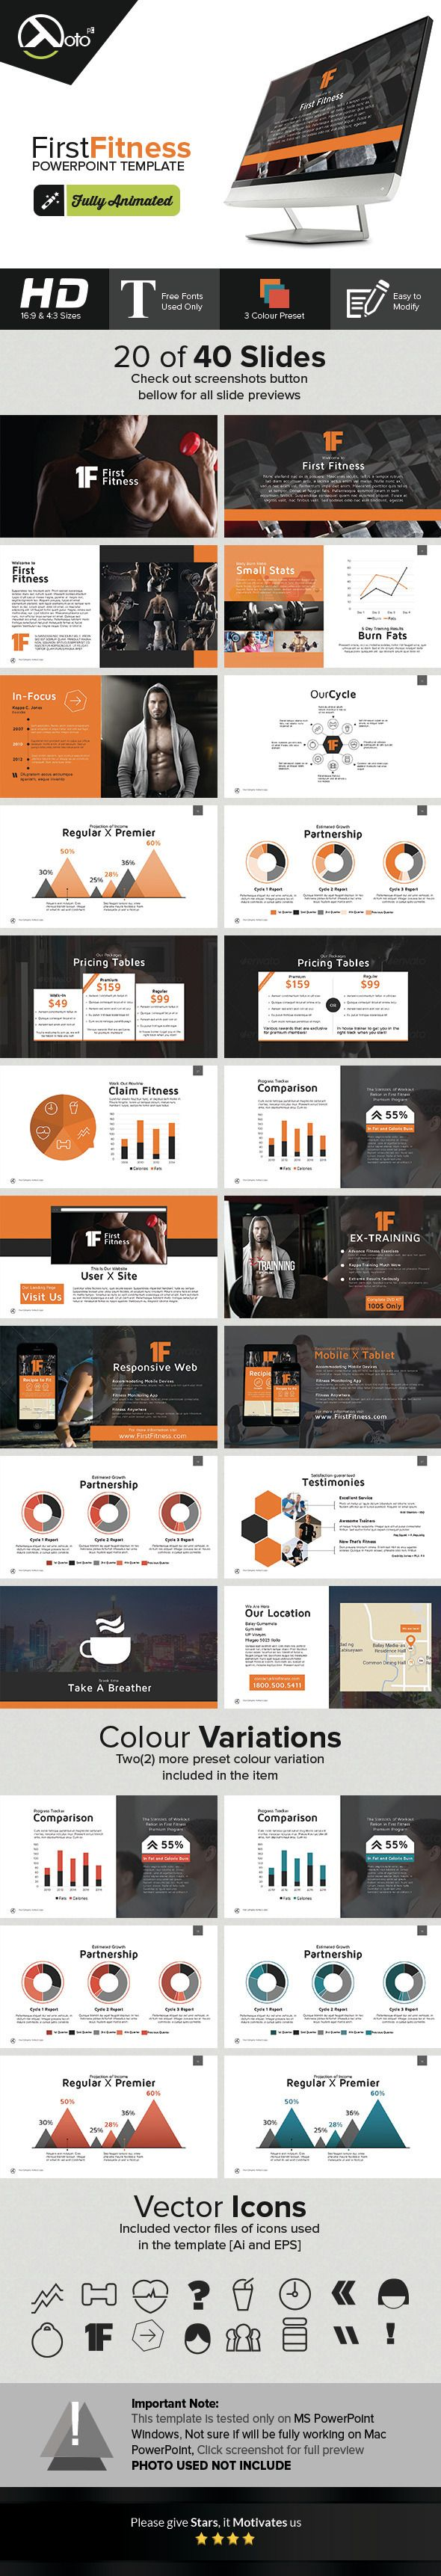 First Fitness Gym & Product Company Presentation (Powerpoint Templates) First Fitness Gym &amp